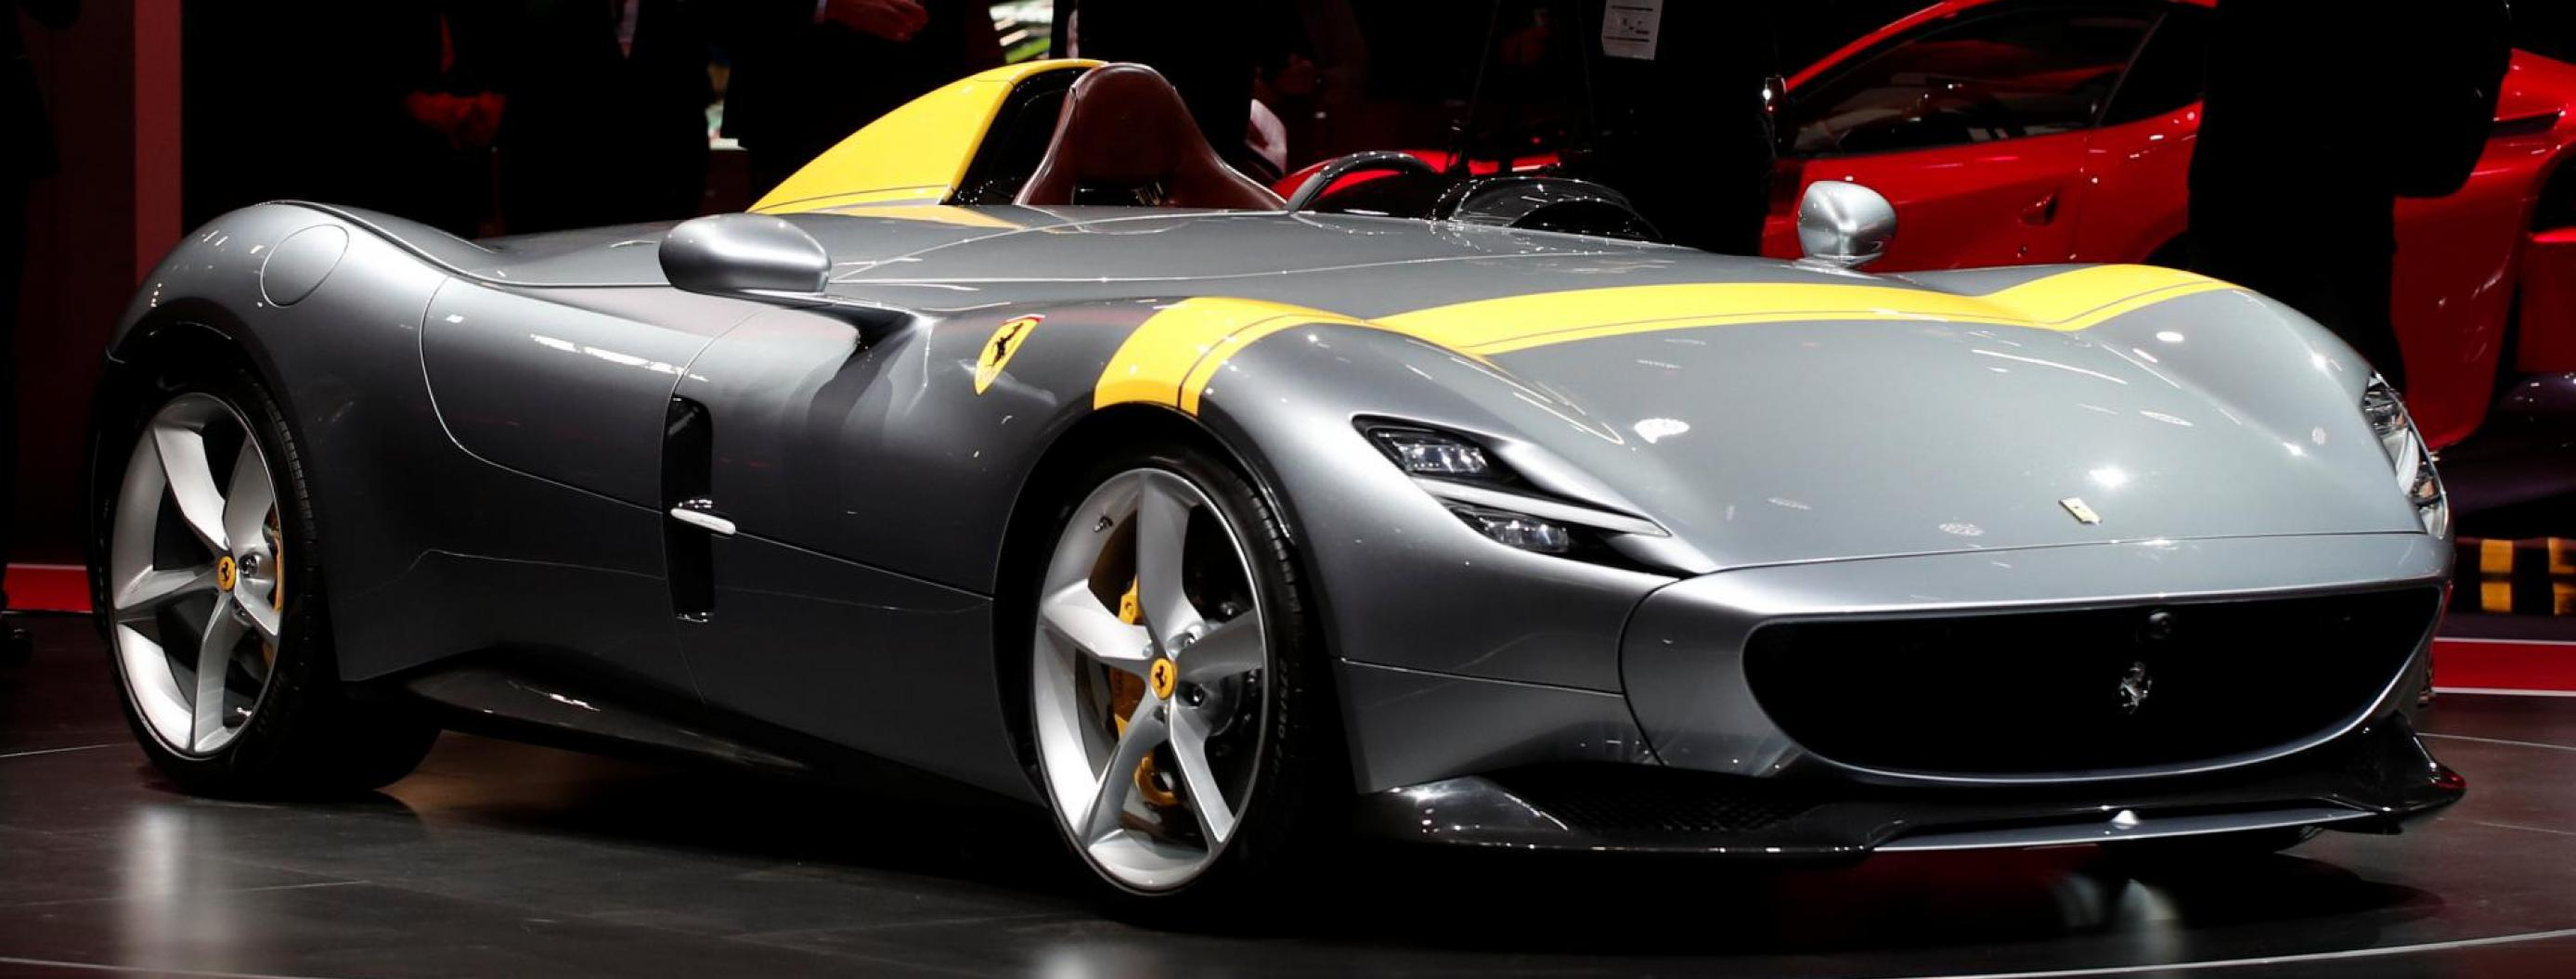 Ferrari Reveals a New Convertible with No Windshield